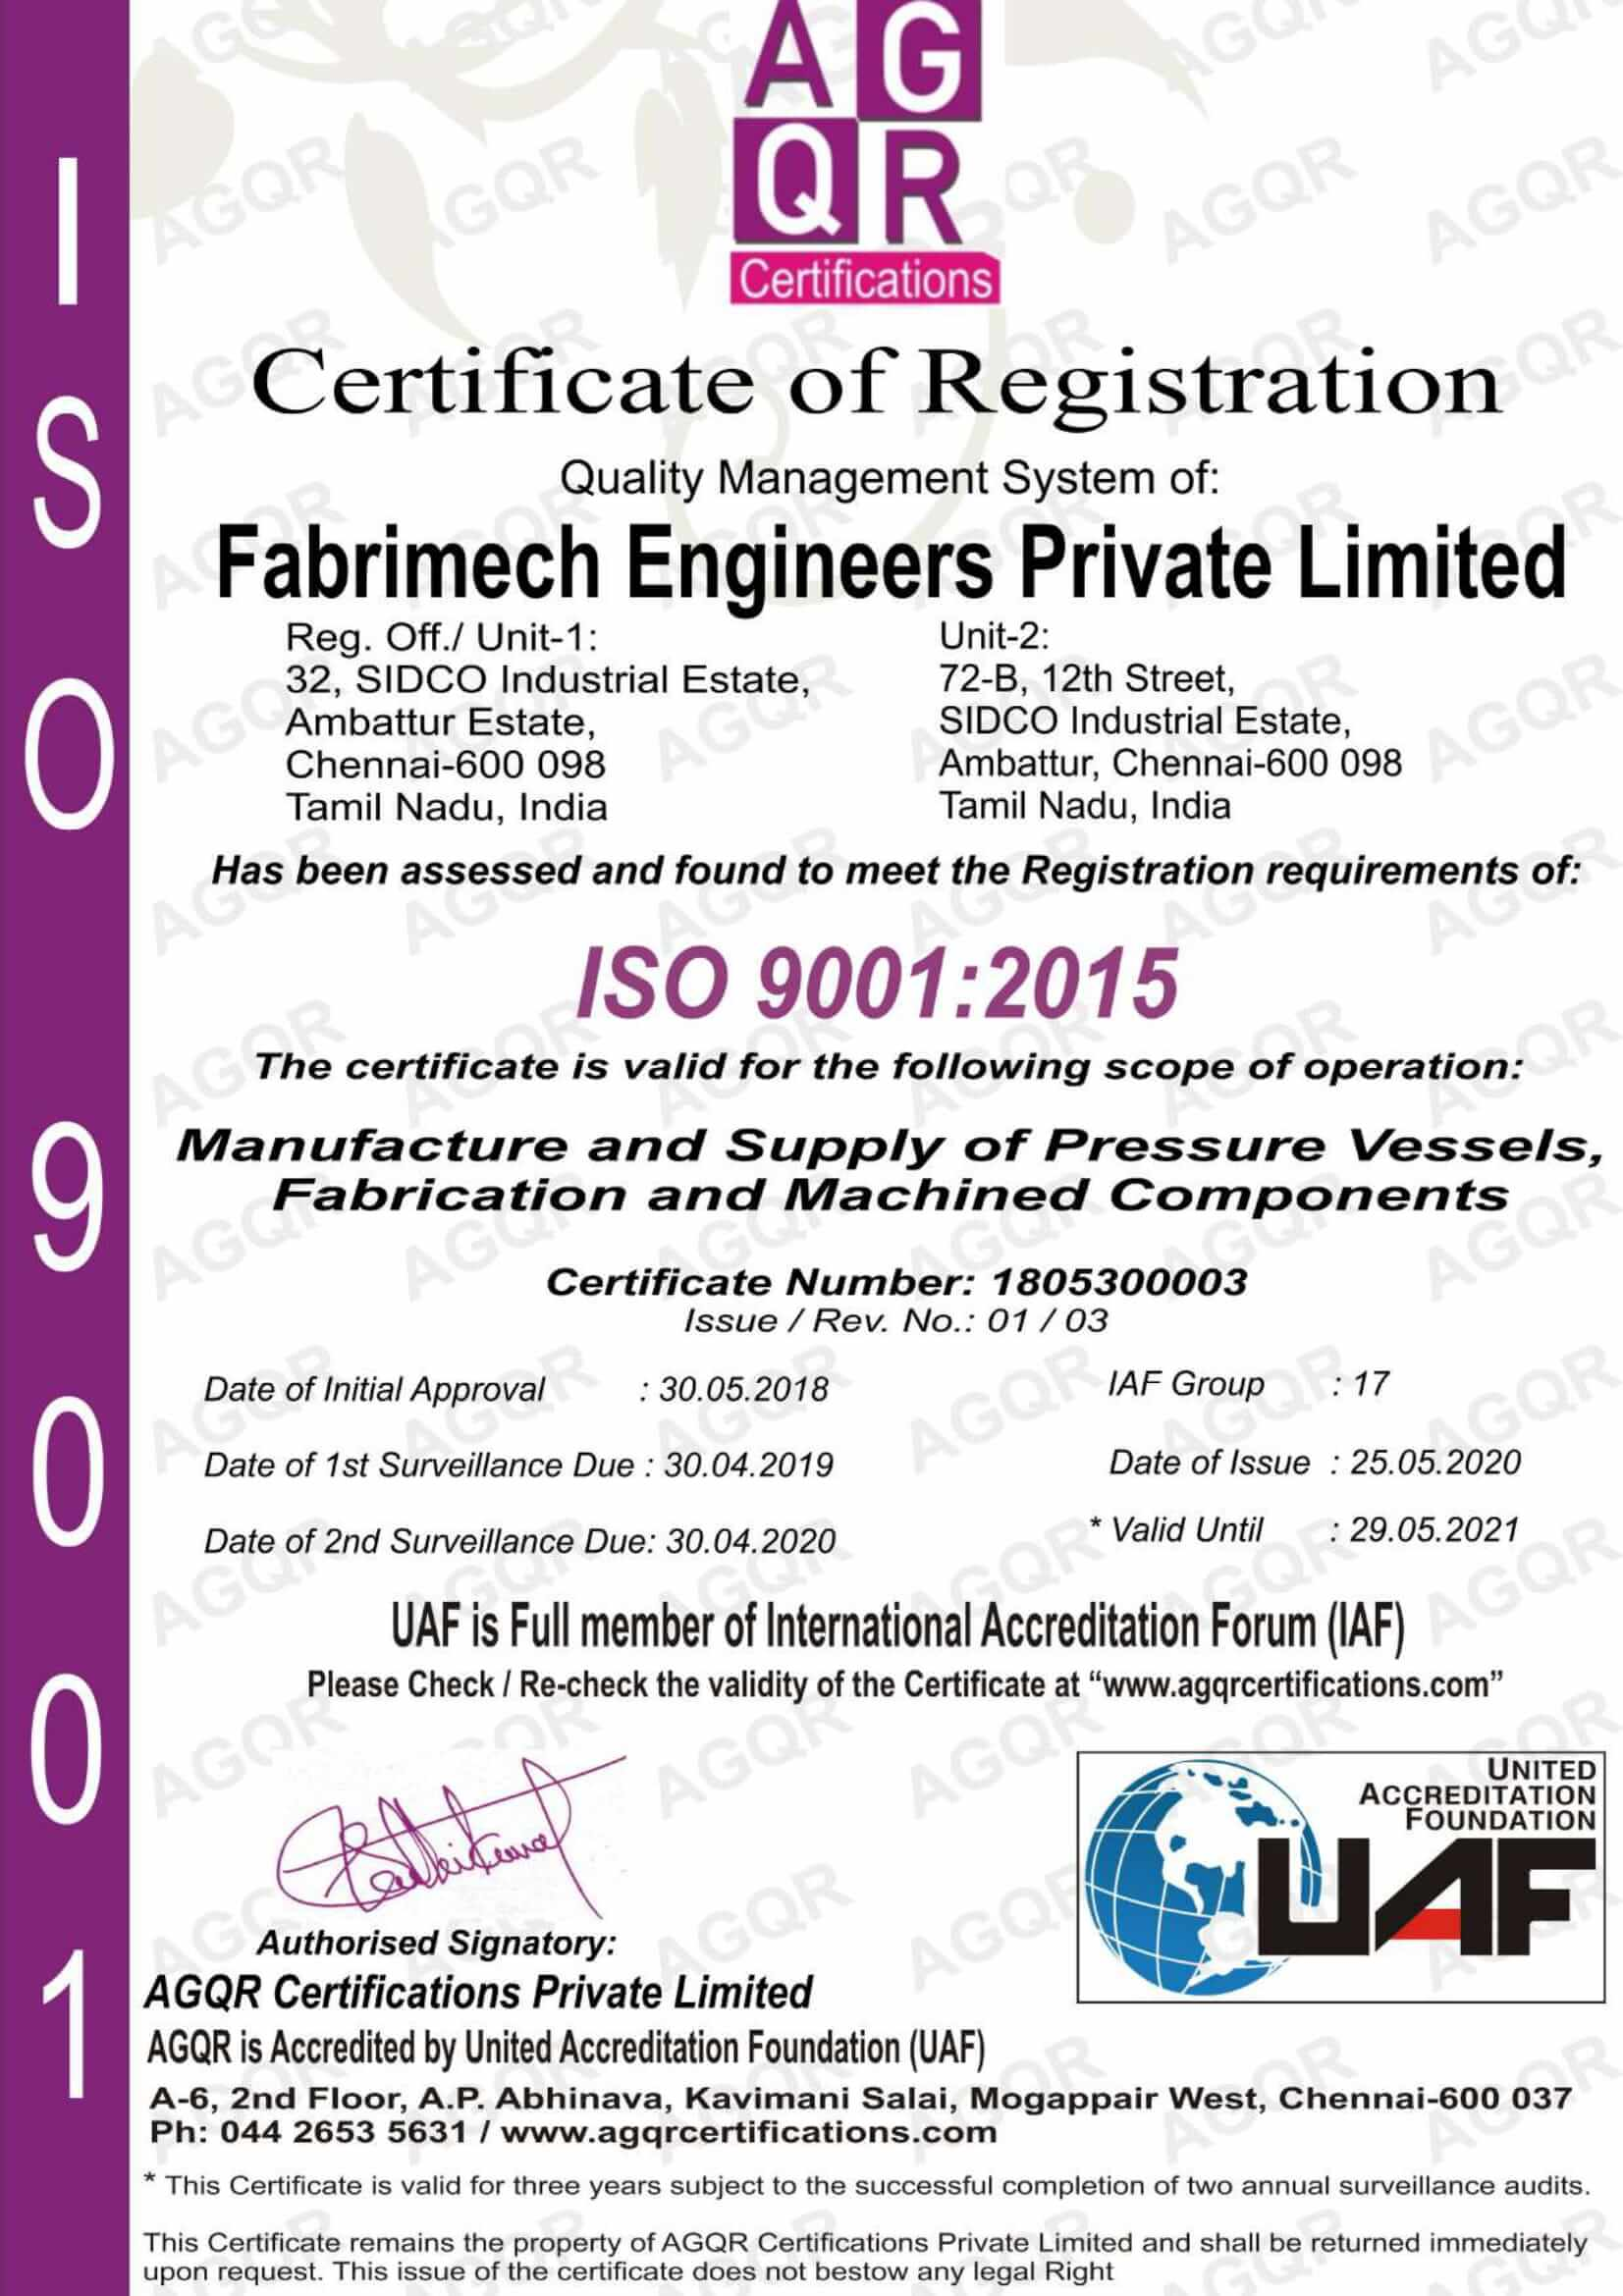 ISO 9001:2015 FMEPL 2021